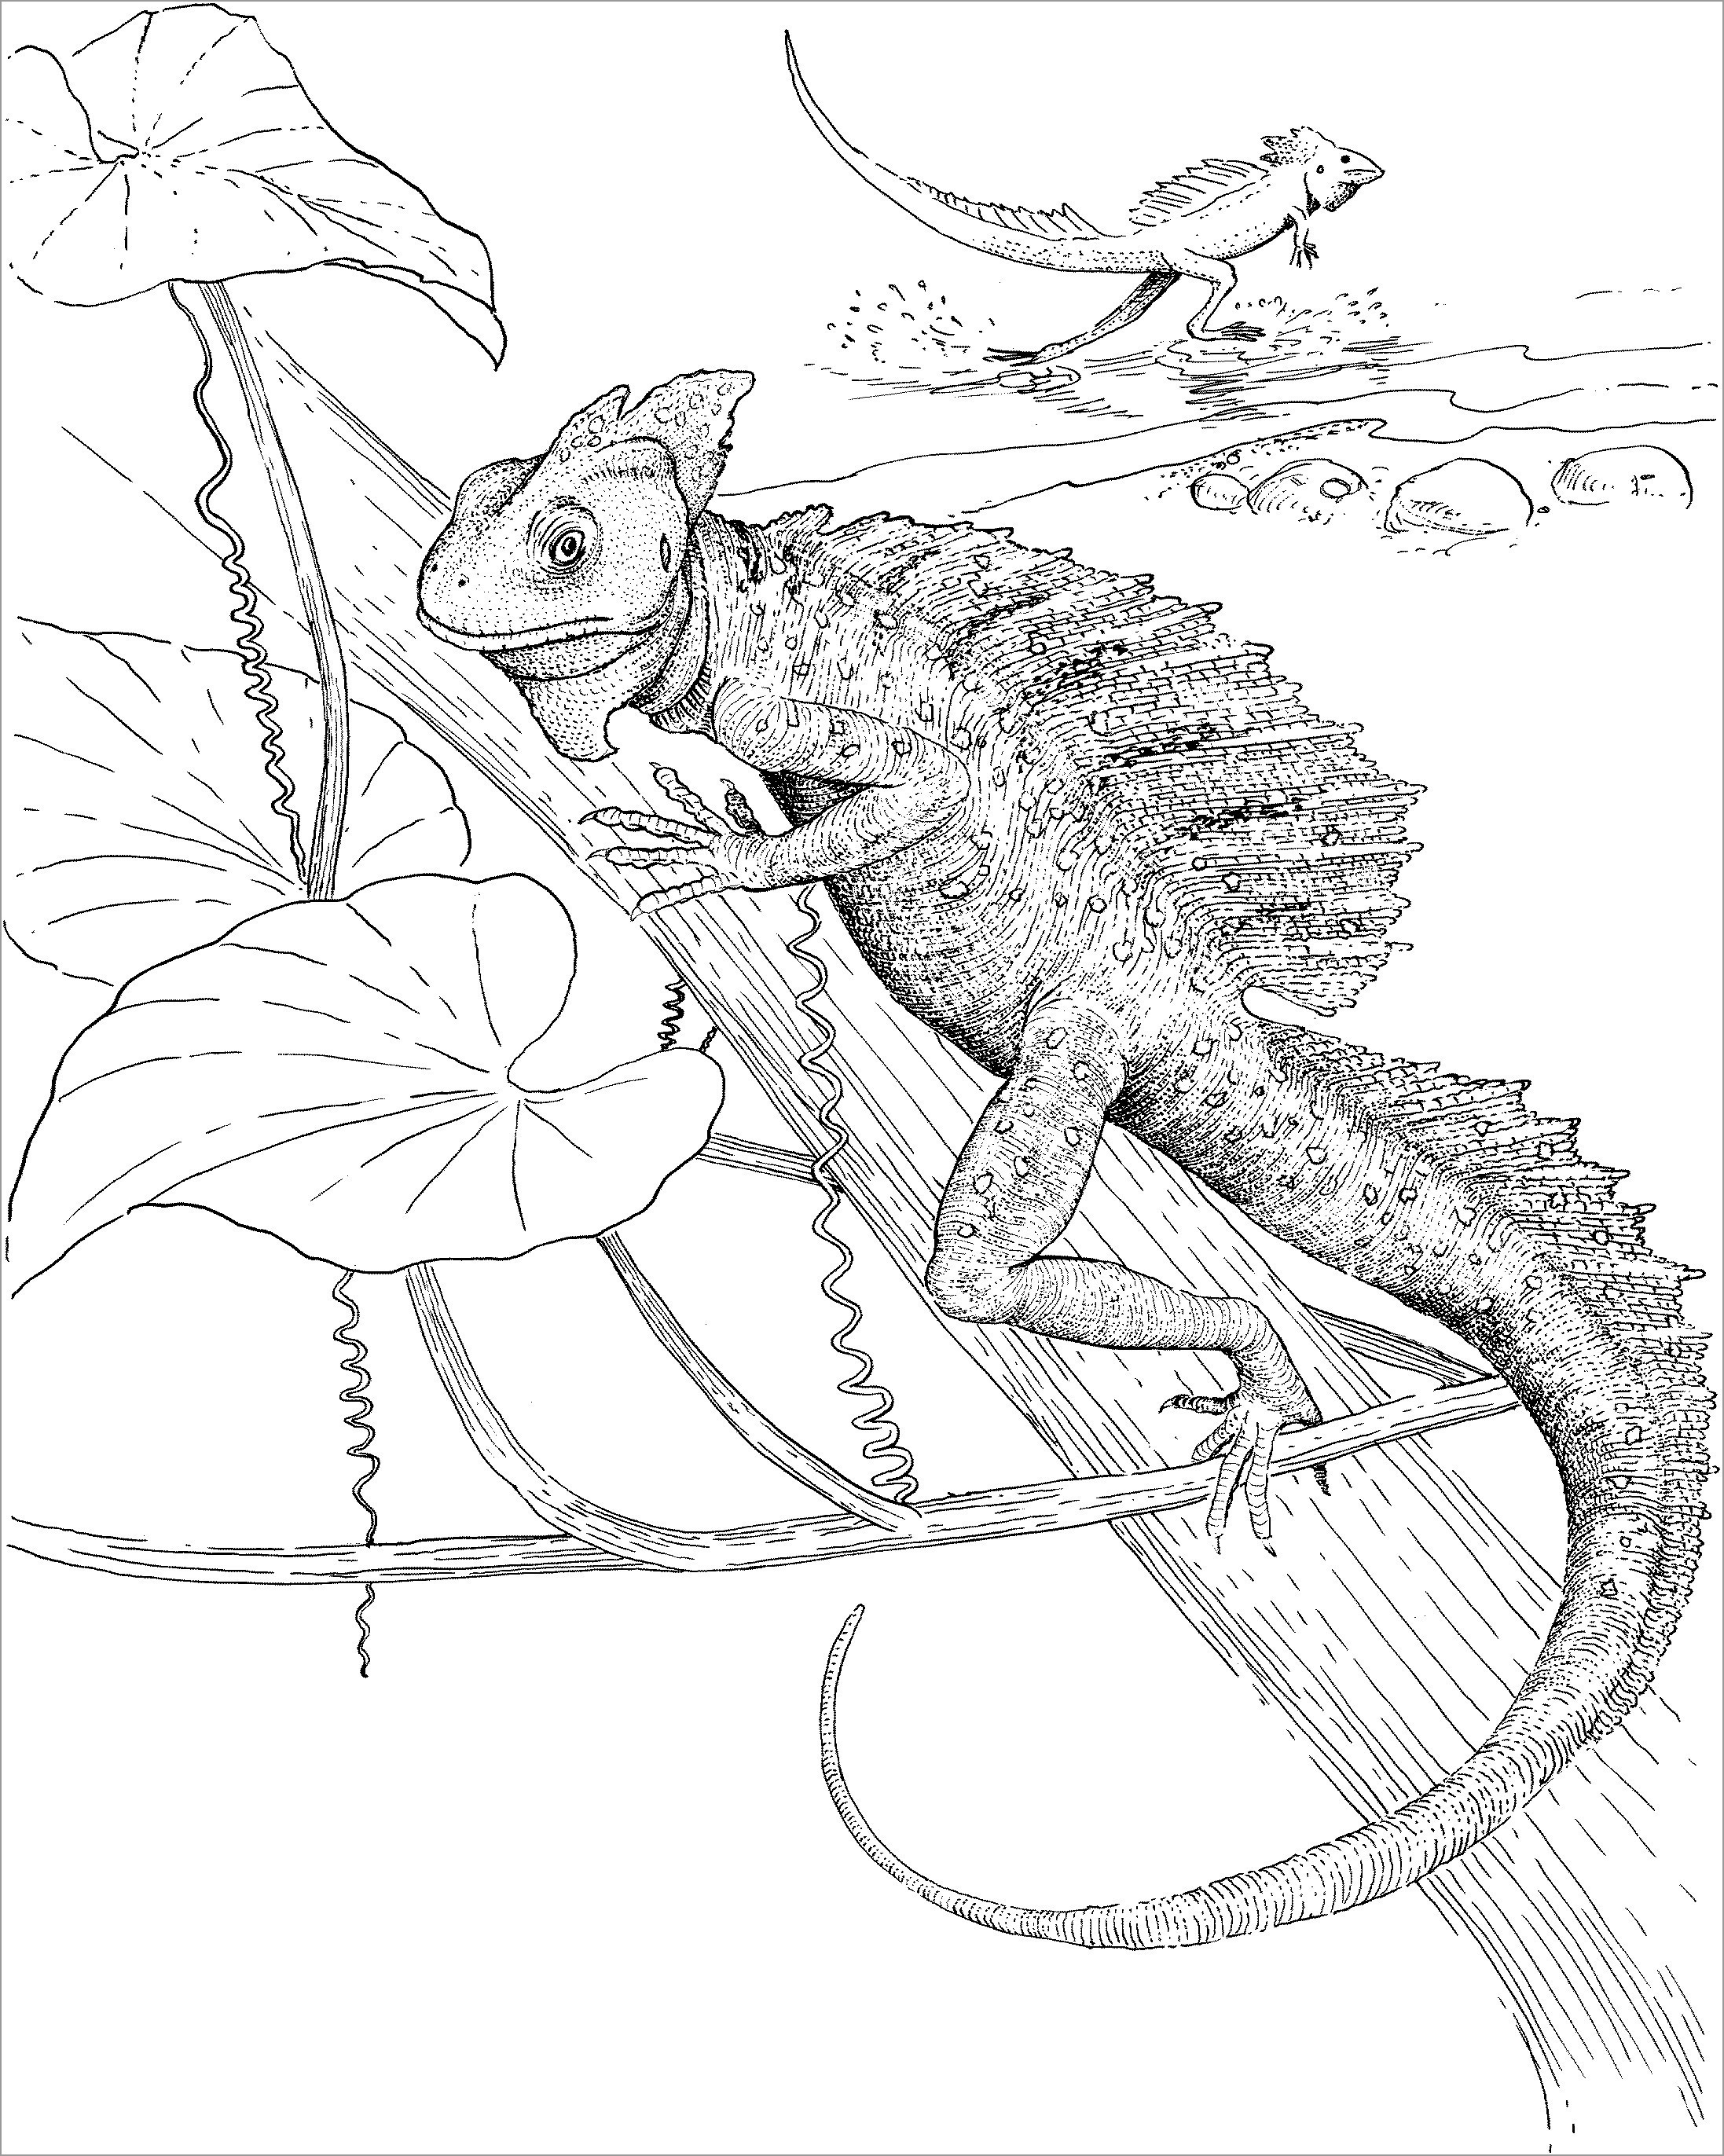 picture of a lizard to colour in printable lizard coloring pages for kids cool2bkids a of colour to in lizard picture